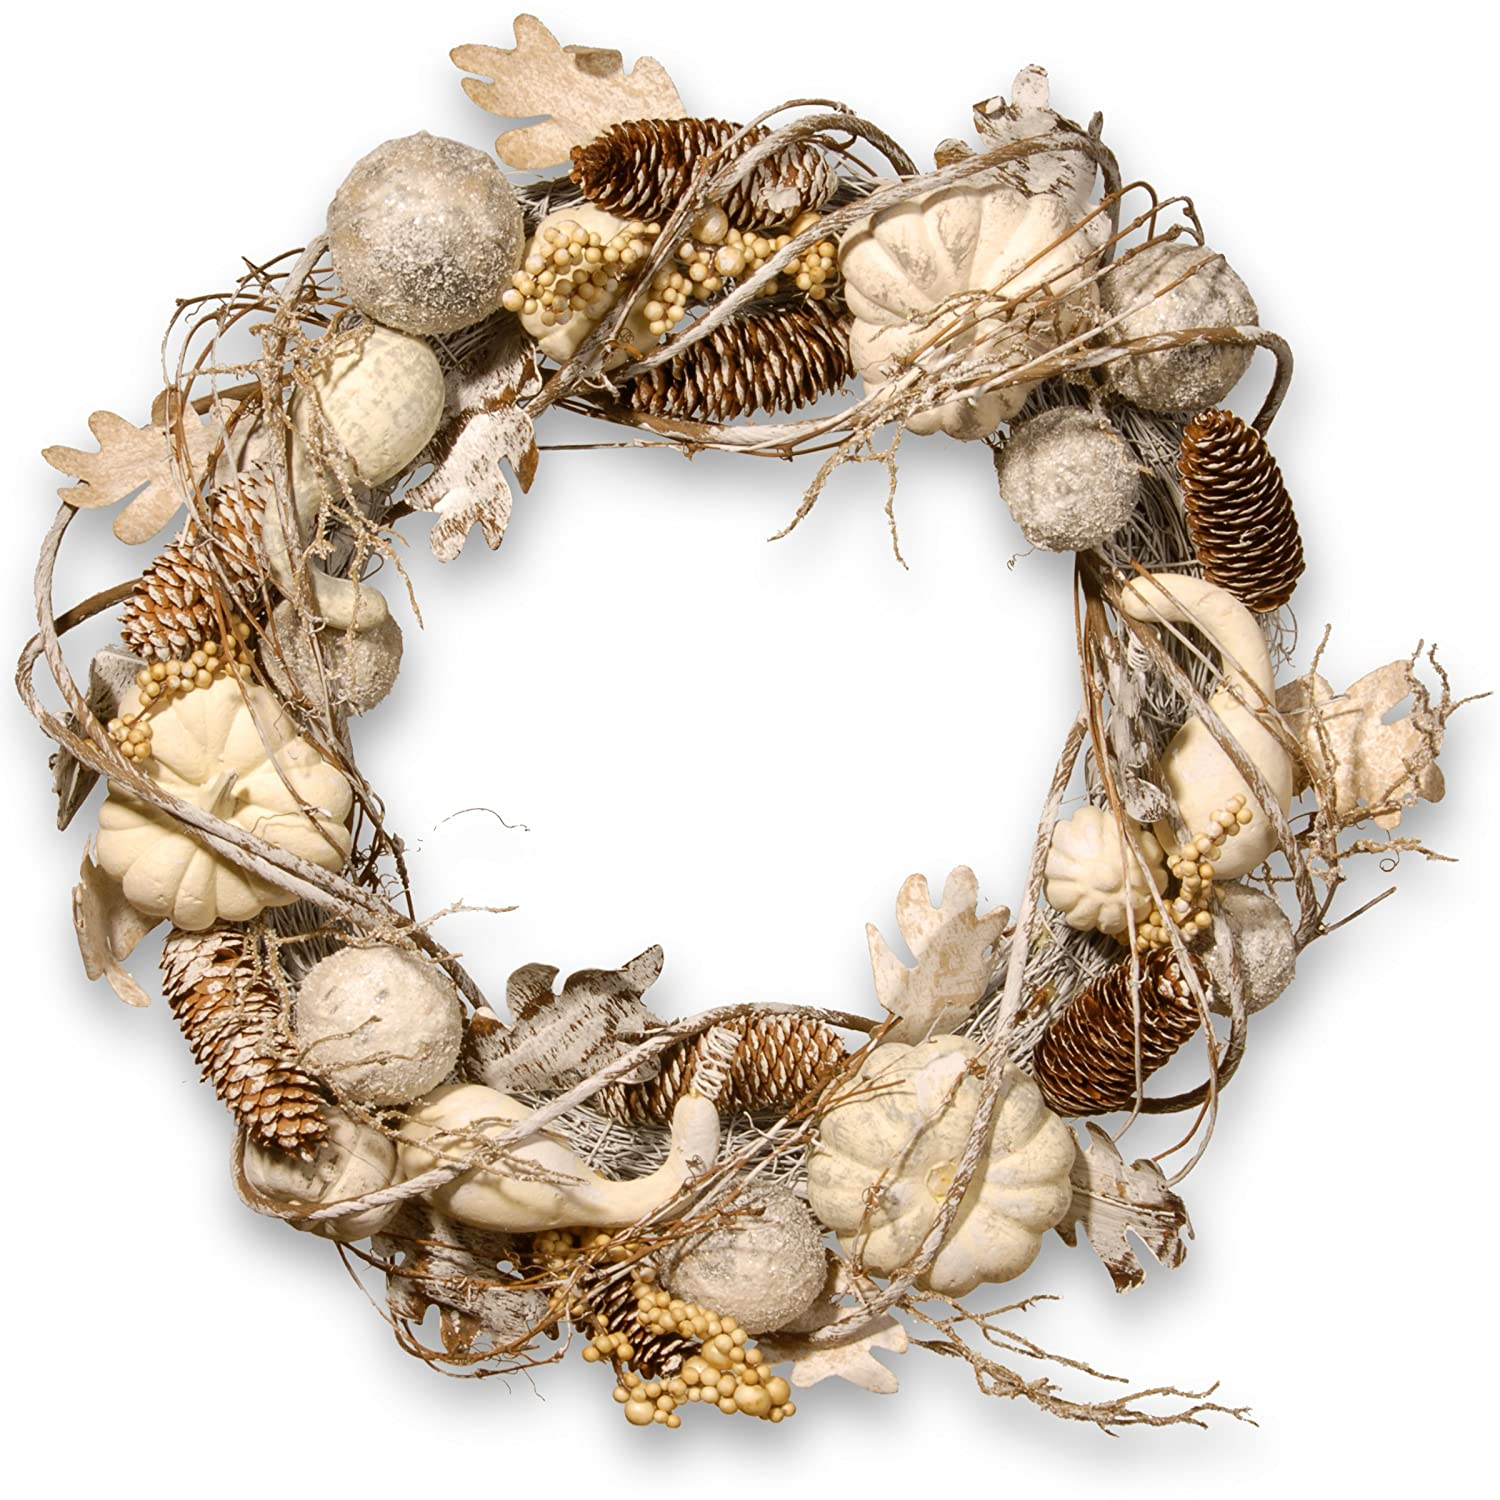 20 Inch White Tipped Pinecone Wreath with Gourds, Berries and Ball Ornaments